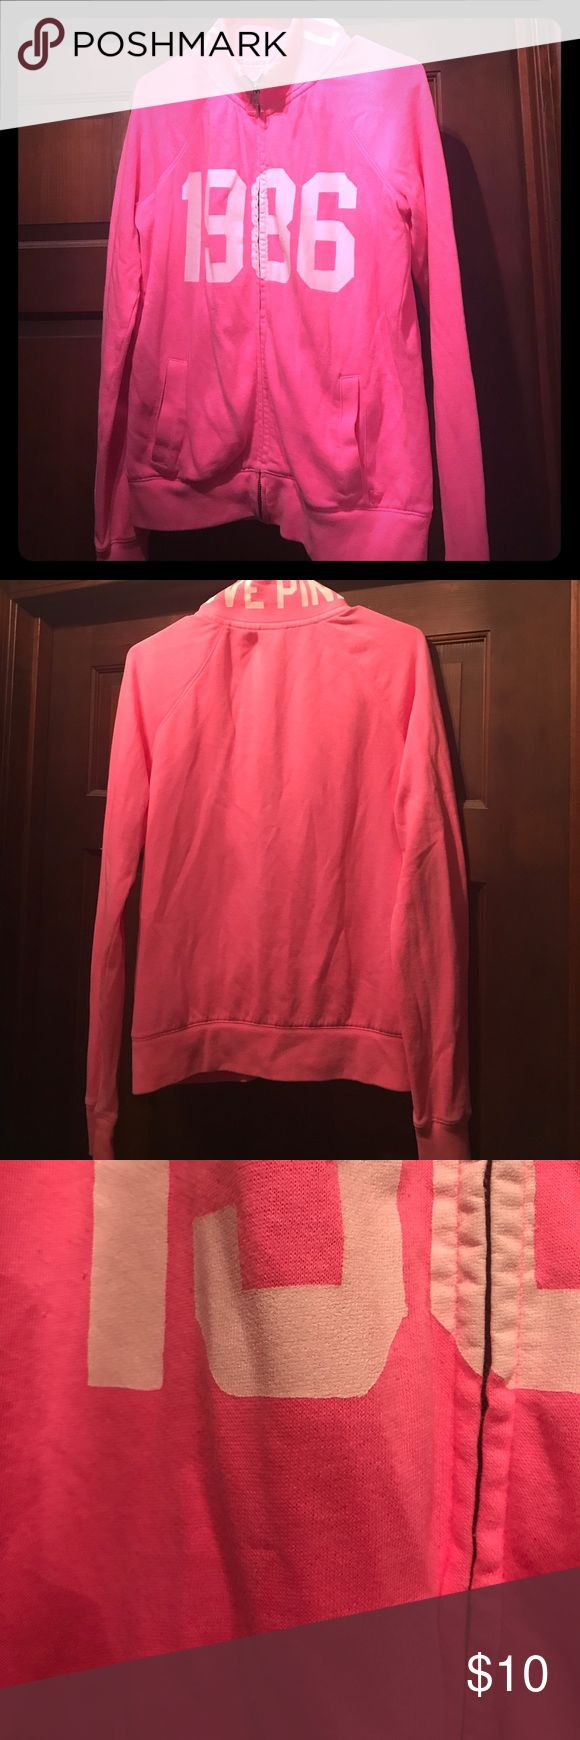 💋Victoria's Secret Pink zip up💋 Neon pink Victoria's Secret Pink zip up crew sweatshirt size S in good condition one tiny tiny fabric pull seen in last pic under the 9 can't tell unless trying otherwise perfect PINK Victoria's Secret Tops Sweatshirts & Hoodies